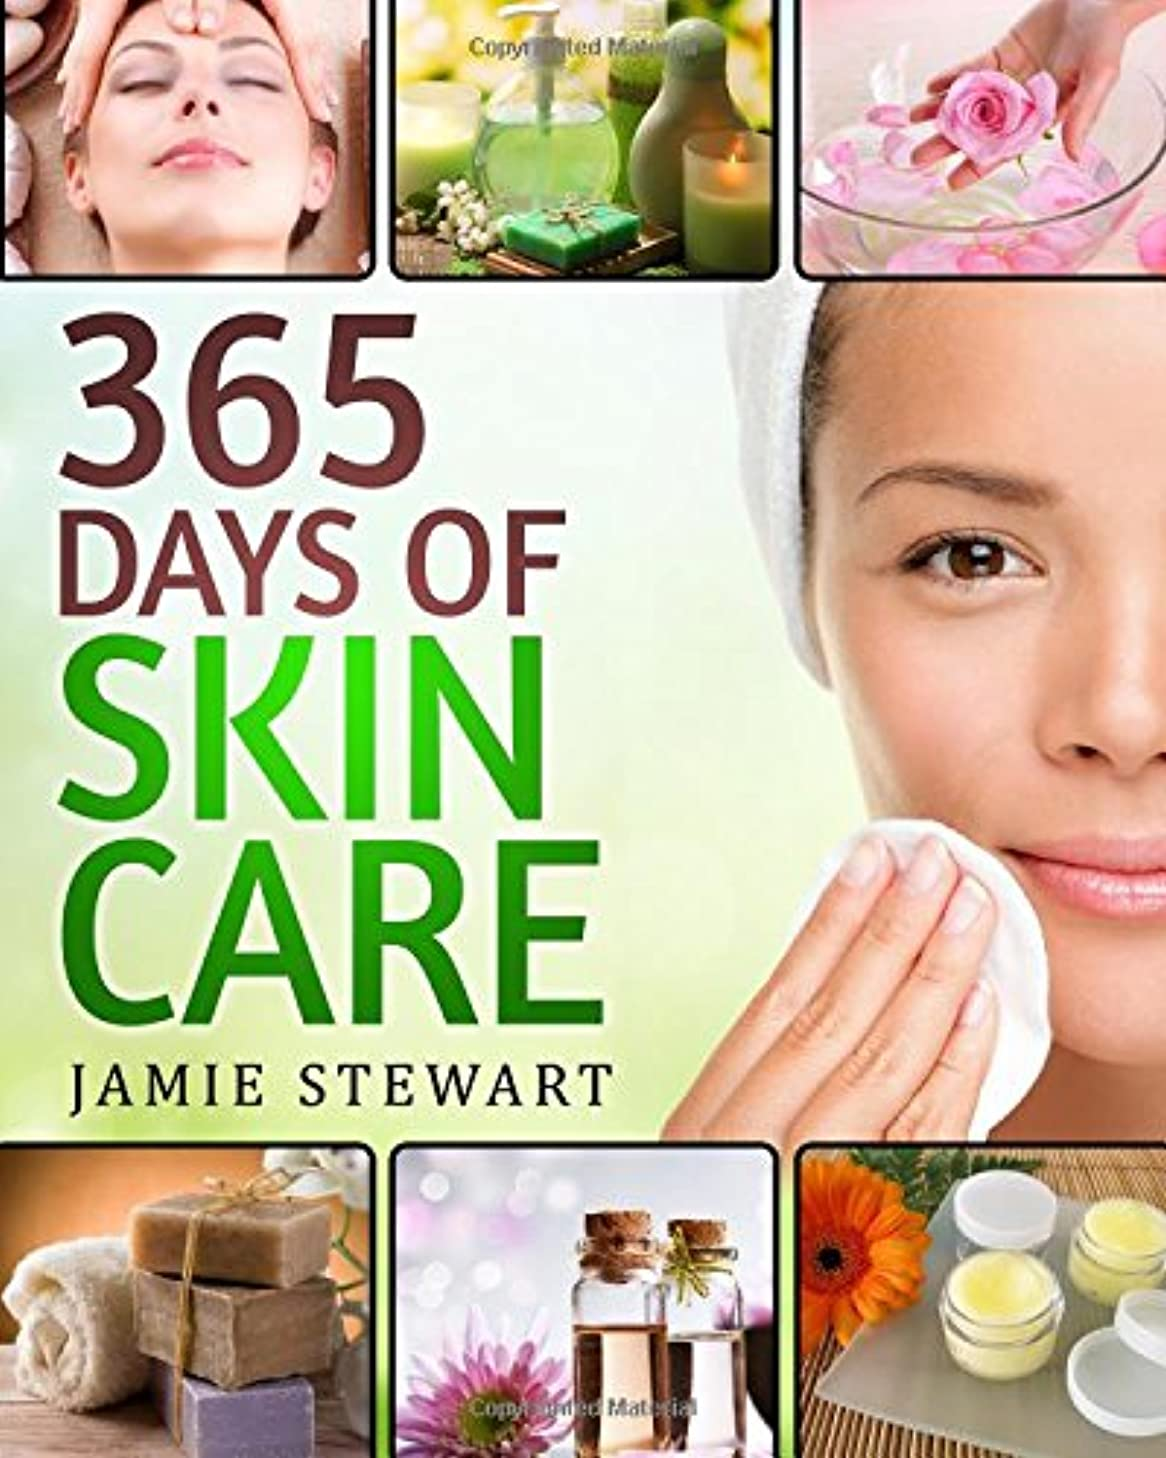 365 Days of Skin Care: DIY Skin Care Hacks, Essential Oils, Natural Soaps, Homemade Face Masks, DIY Natural Beauty Recipes